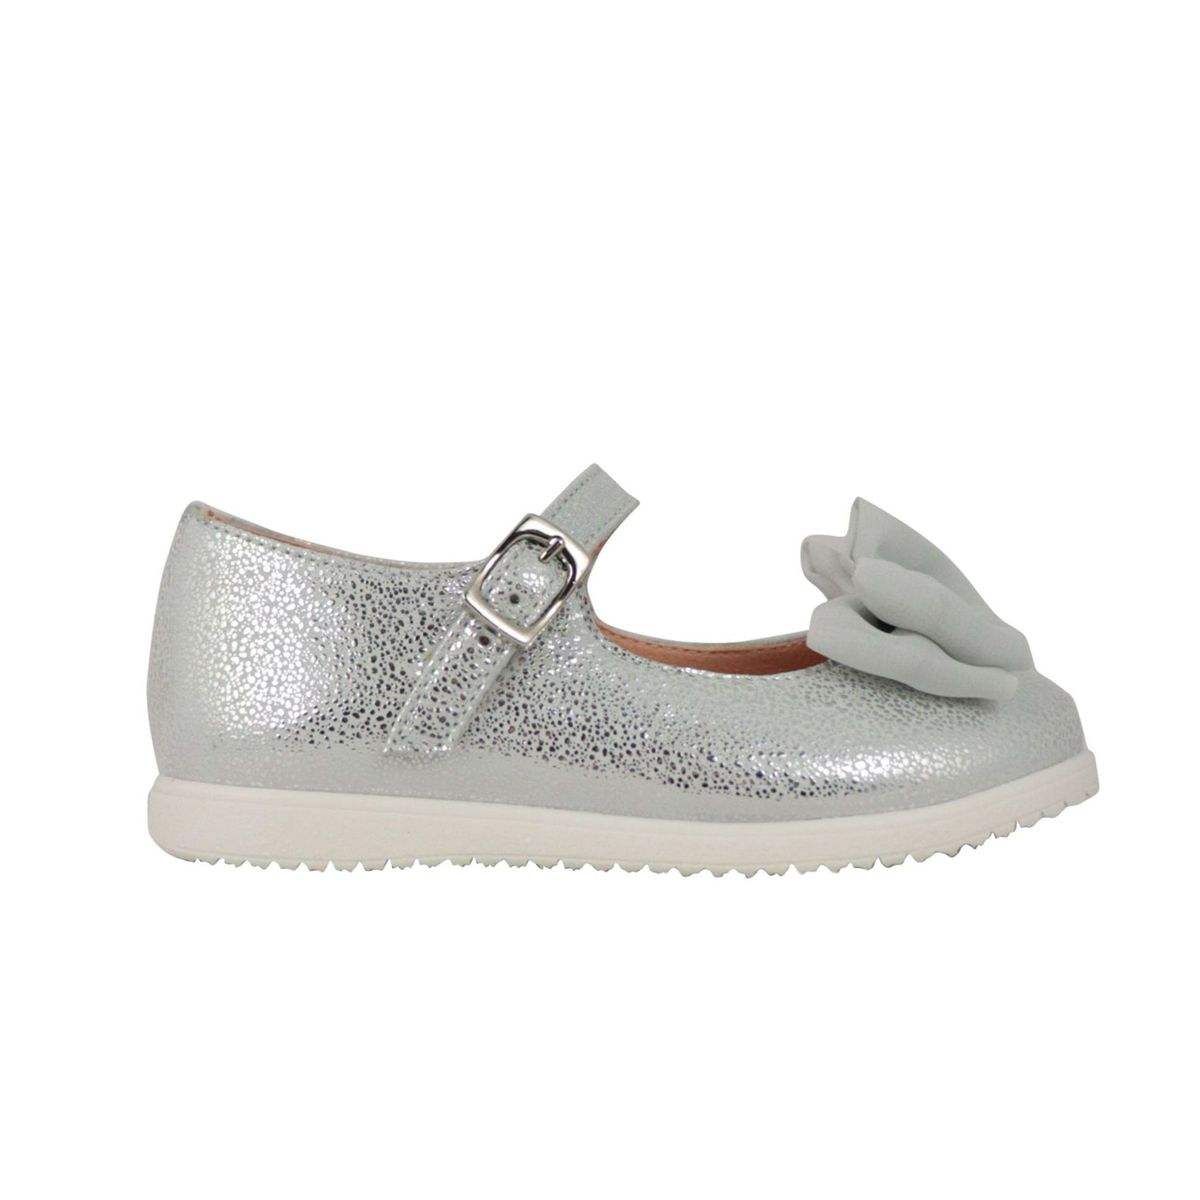 Lurex leather ballerina with front bow Silver Clarys